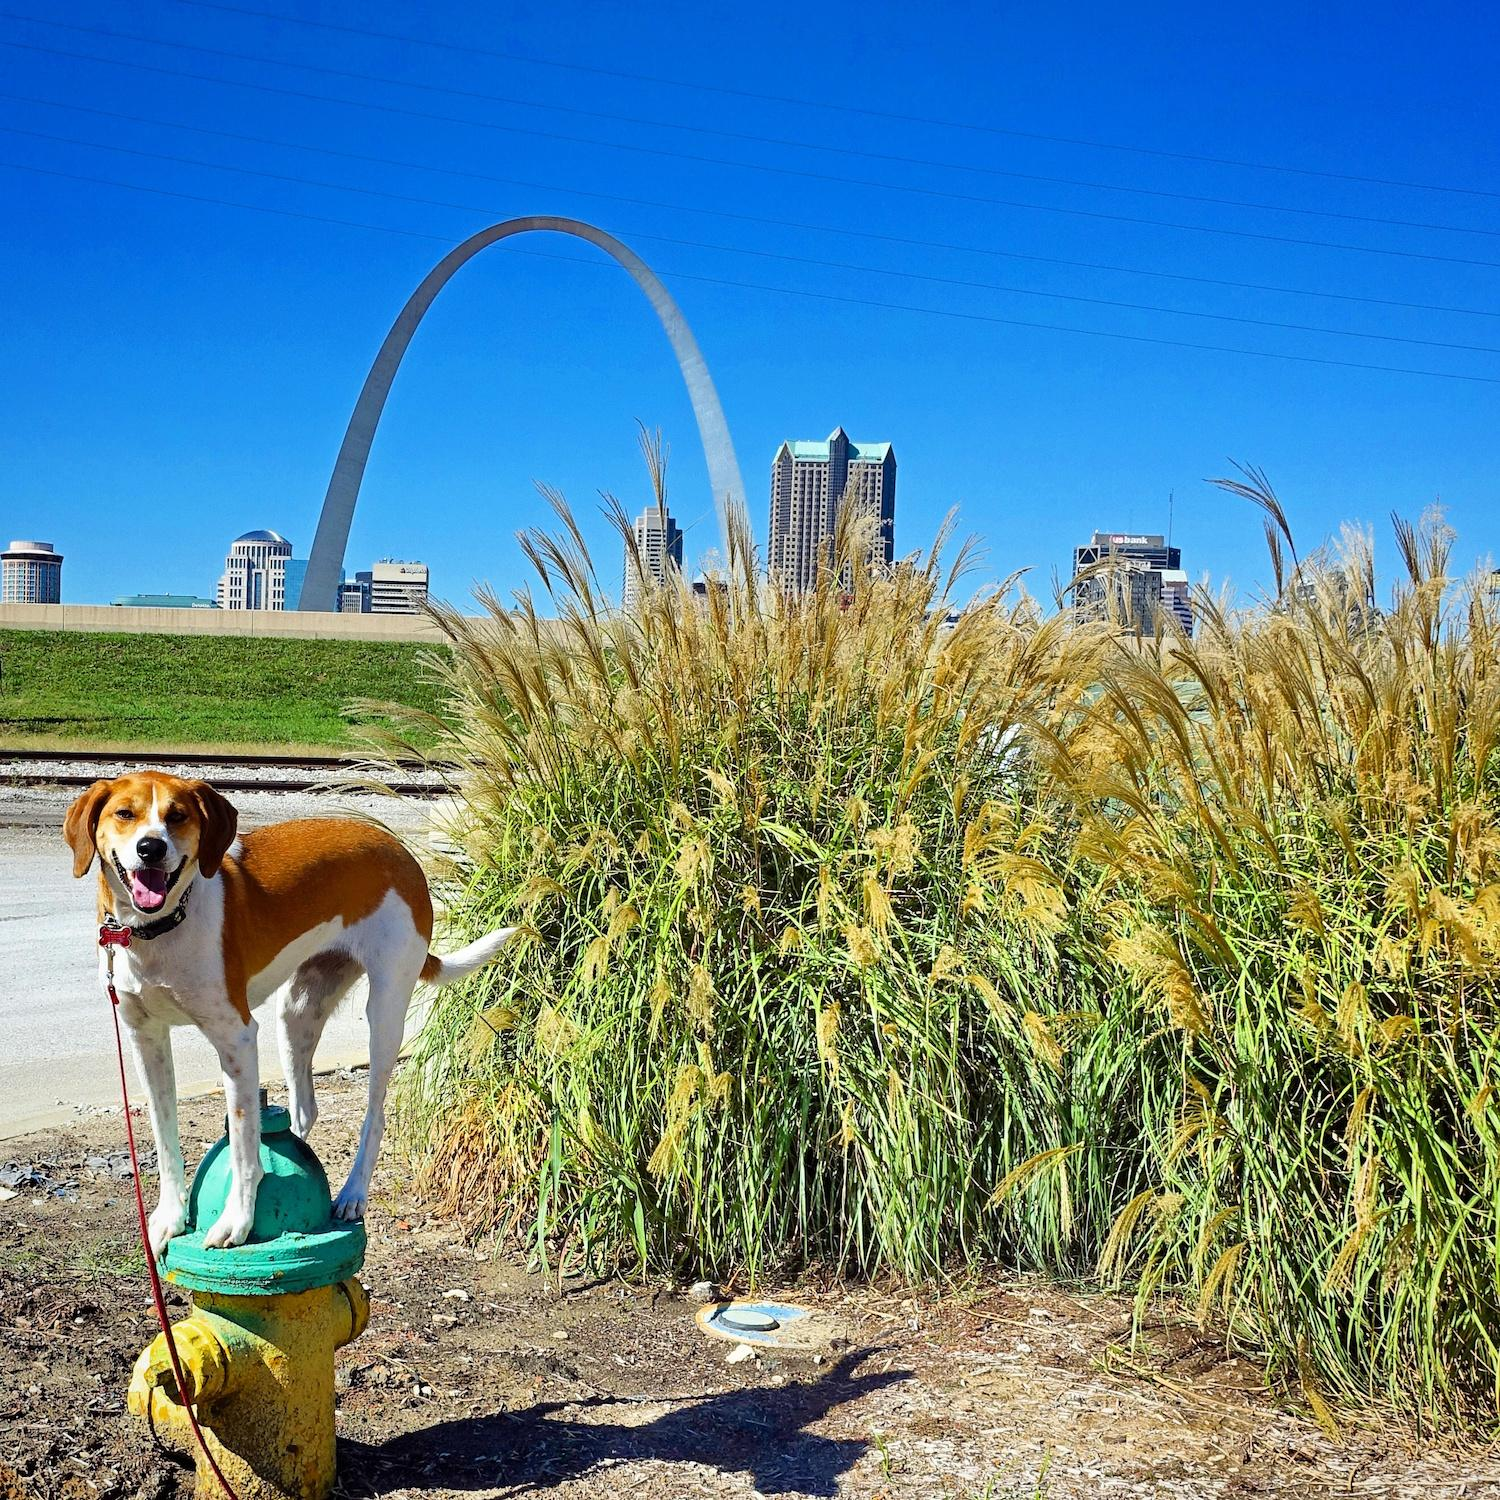 LOCATION: St. Louis Arch / Mollie is a local Instagram celebrity. Famous for posing on fire hydrants in front of ArtWorks murals (and other Cincy landmarks), this hound dog has officially stolen our hearts. You can follow her adventures on Instagram @molliethehounddoggie / Image: Patti Mossey (Mollie's owner and #1 fan) // Published: 5.1.18